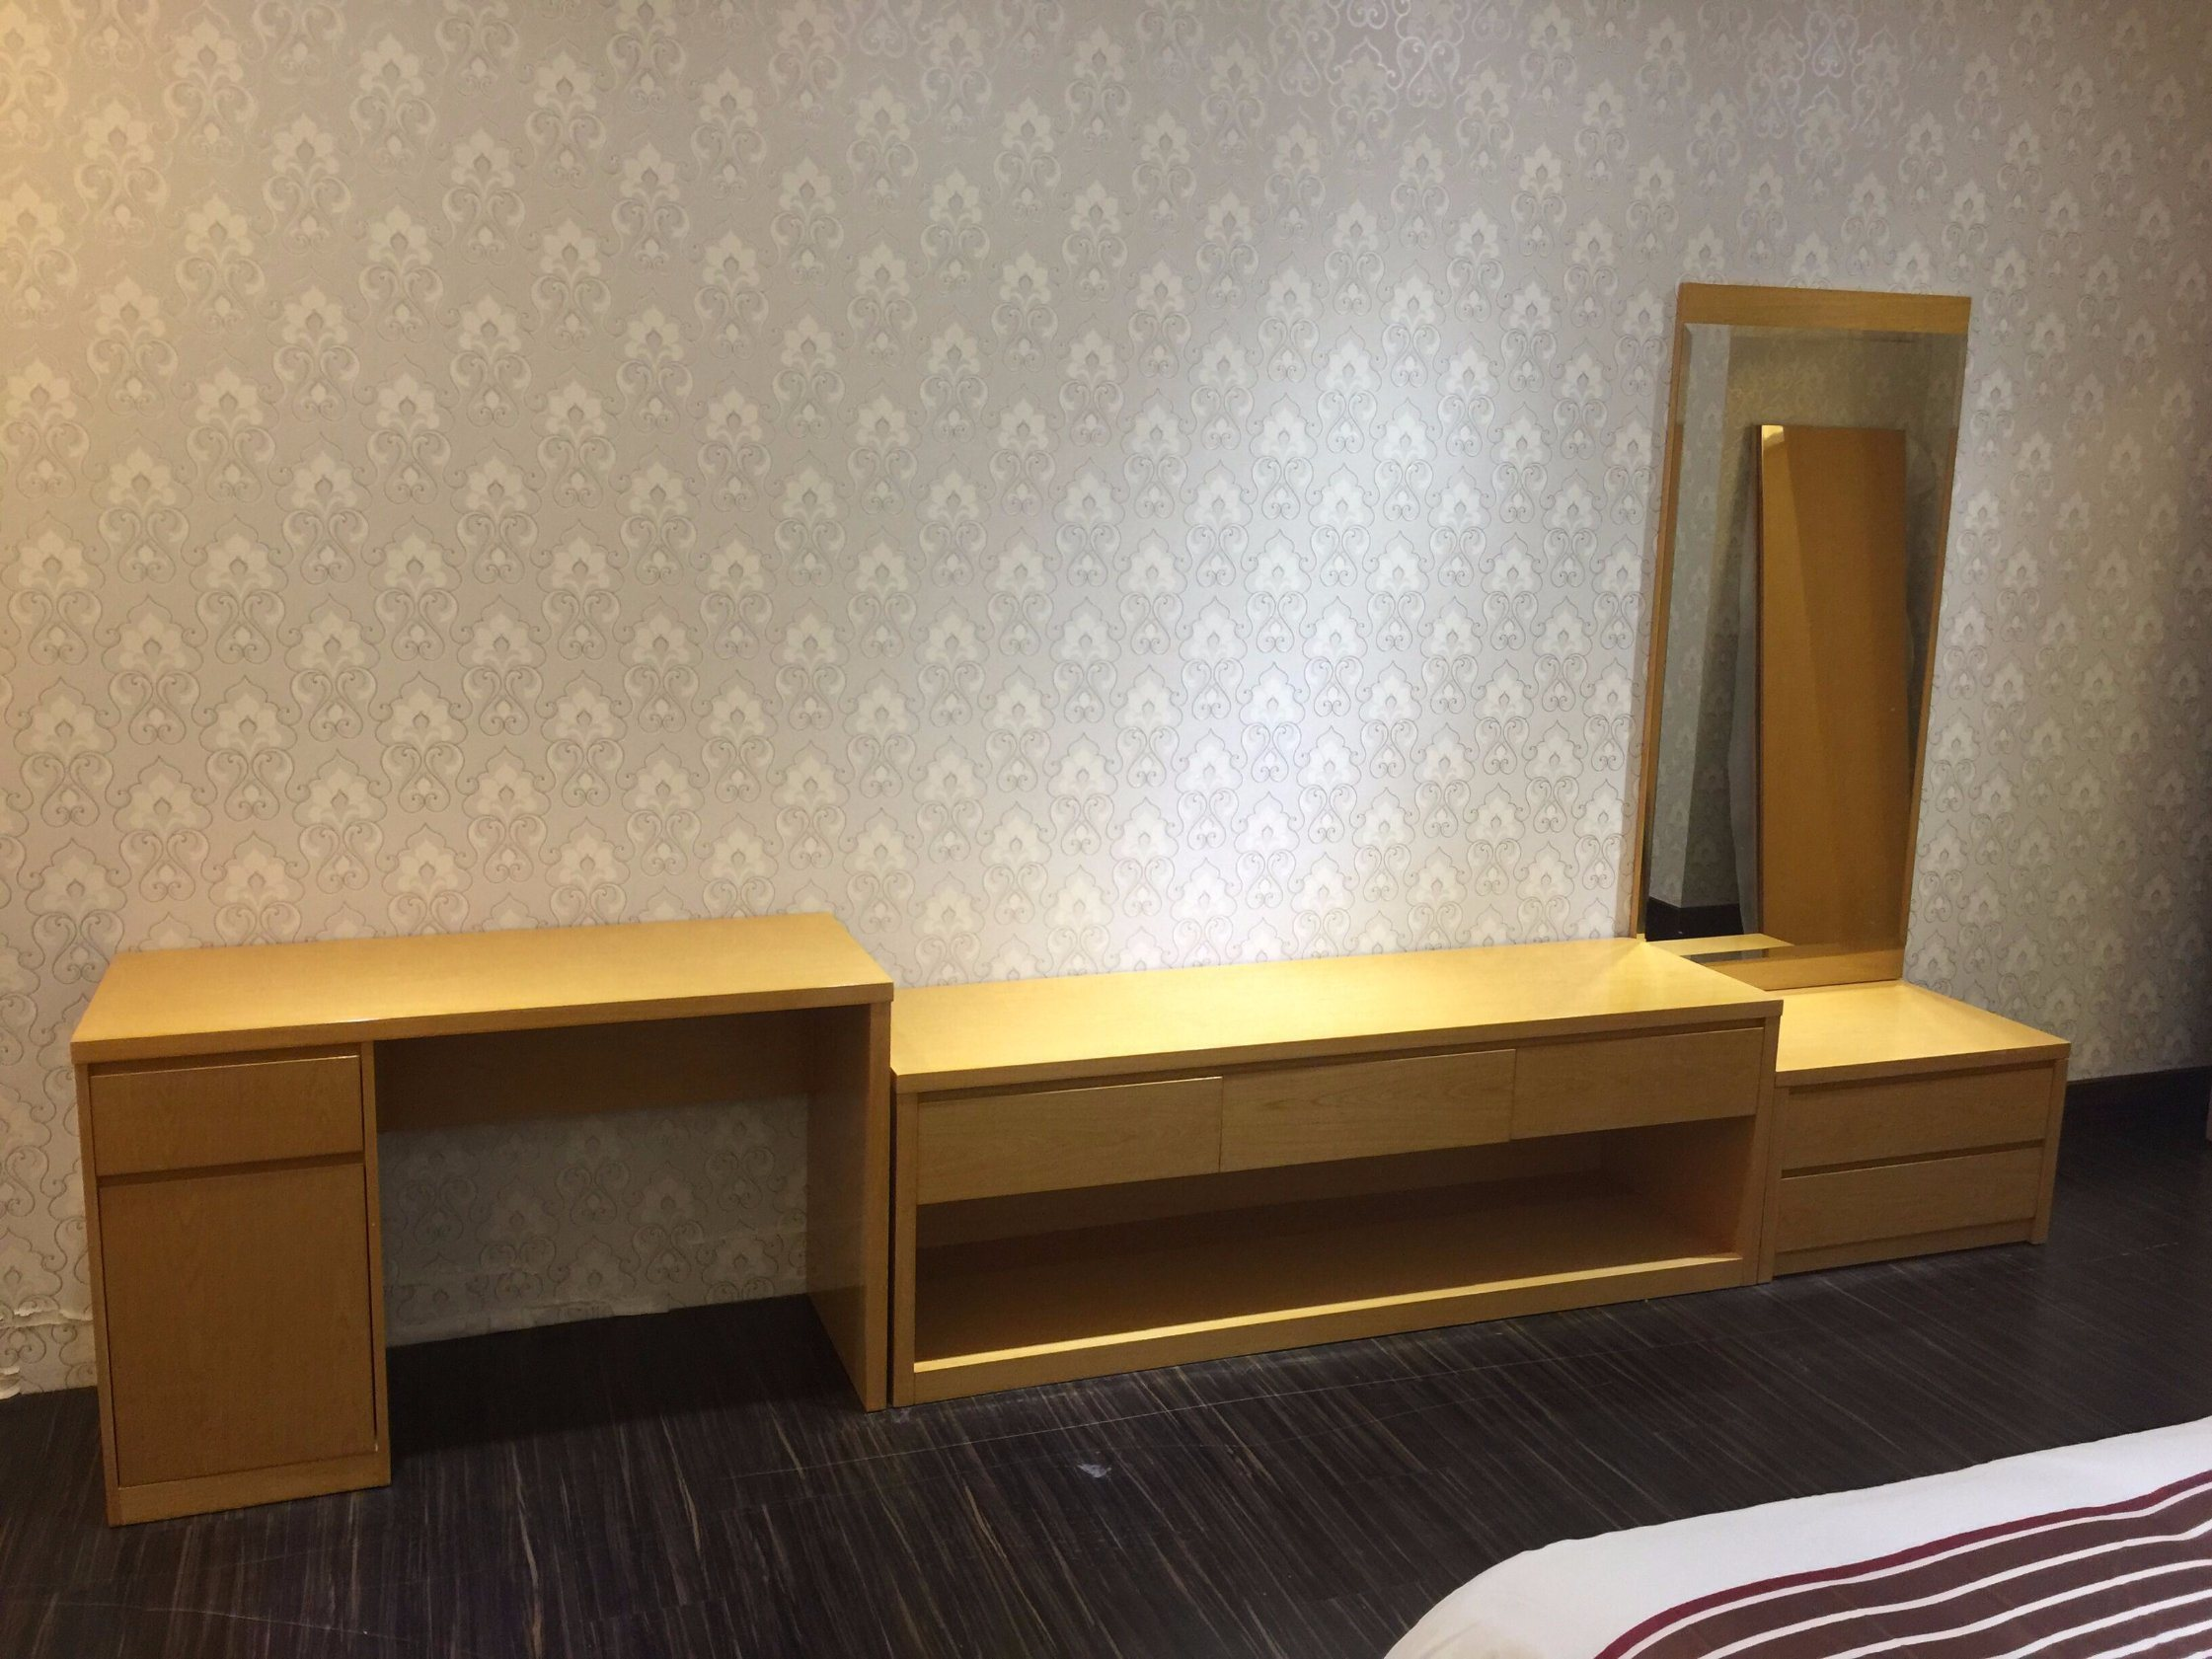 5 Star Hotel Modern Bedroom Furniture/Hilton Hotel Furniture/Standard Hotel Kingsize Bedroom Suite/Kingsize Hospitality Guest Room Furniture (KNCHB-01103) pictures & photos